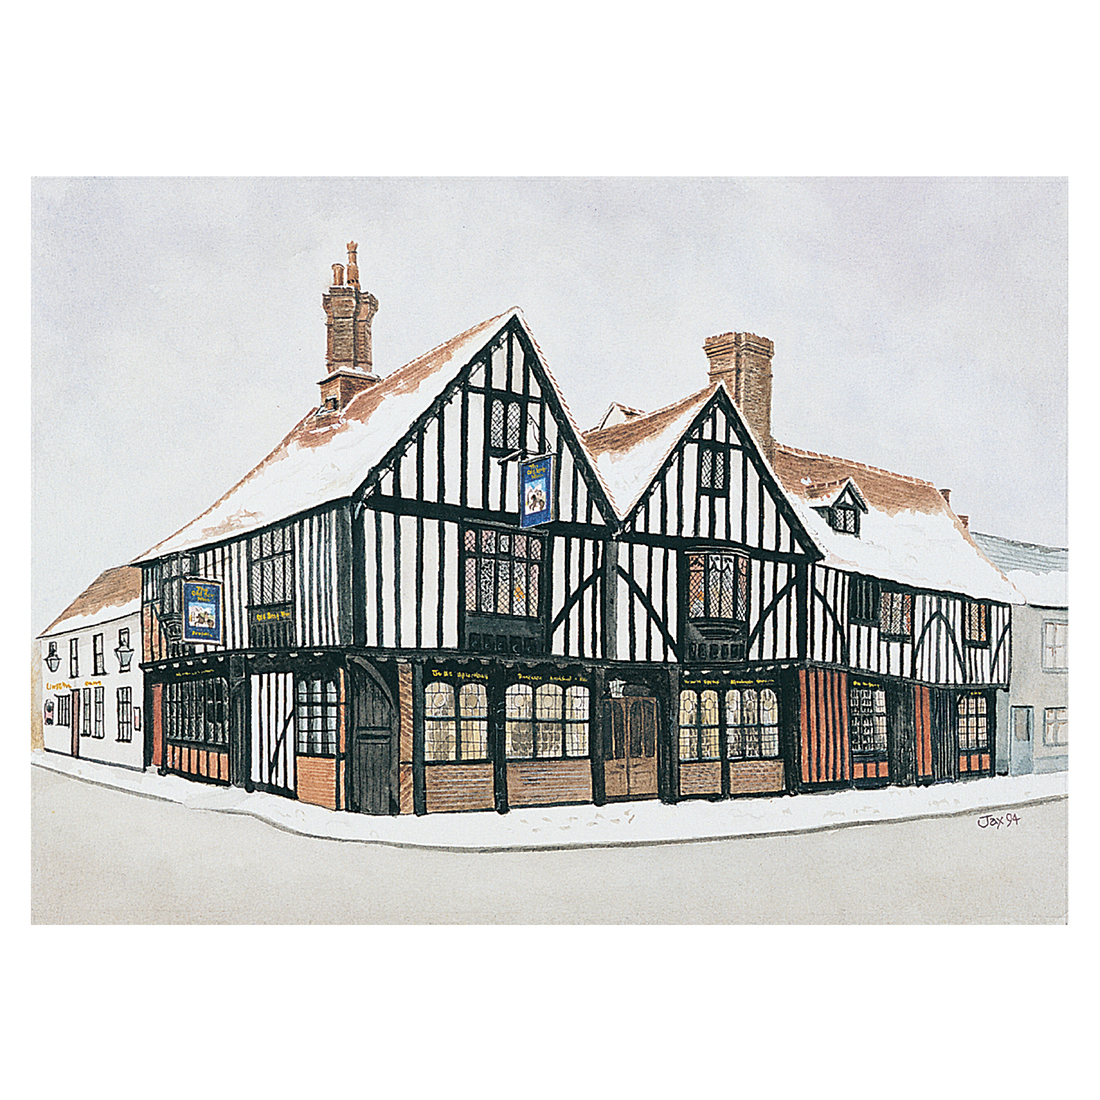 The Old Siege House in watercolour